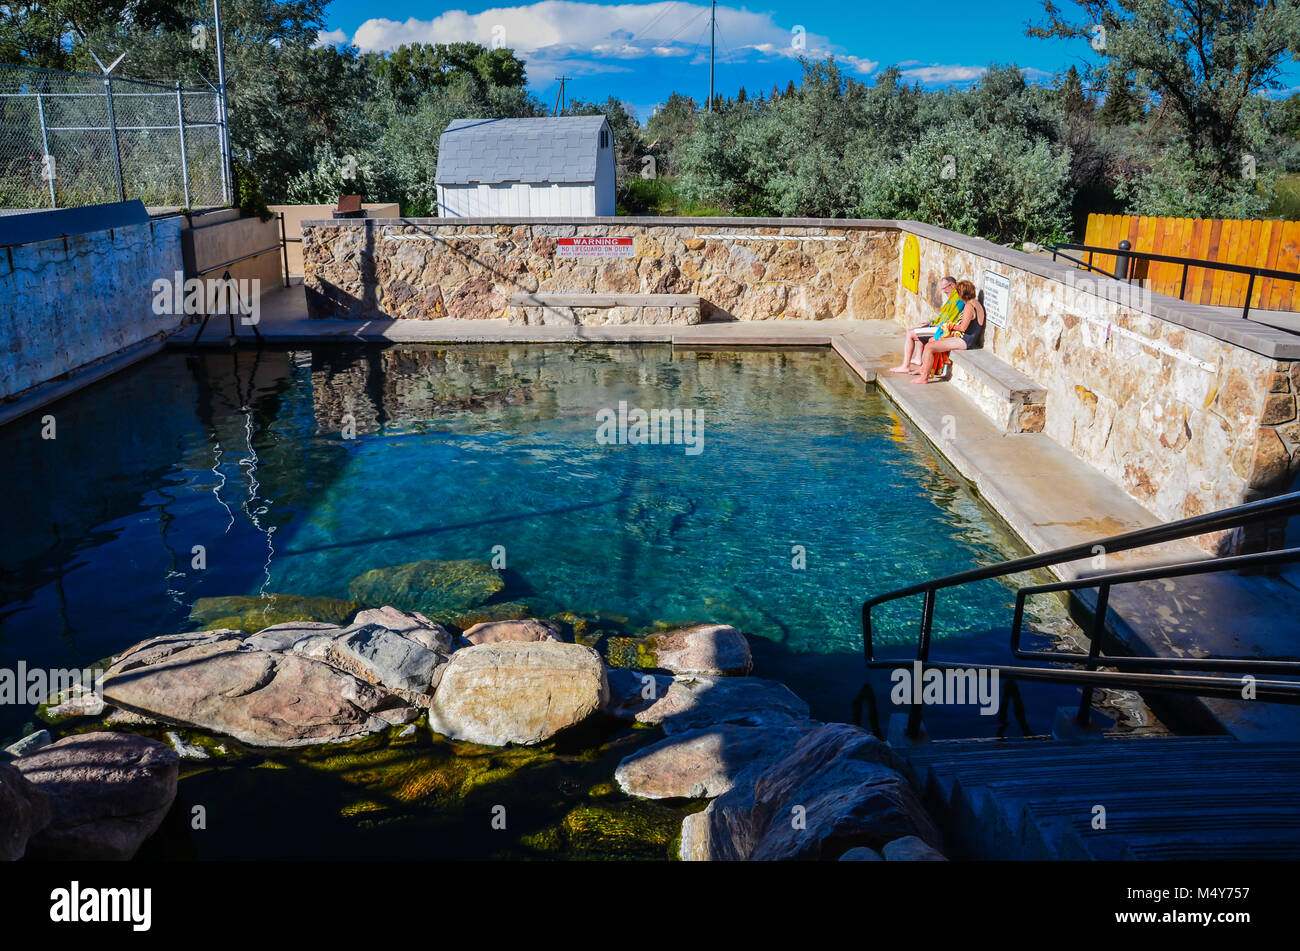 Saratoga, WY, USA. Hobo Hot Pool, a natural hot springs encased in a rock pool. - Stock Image